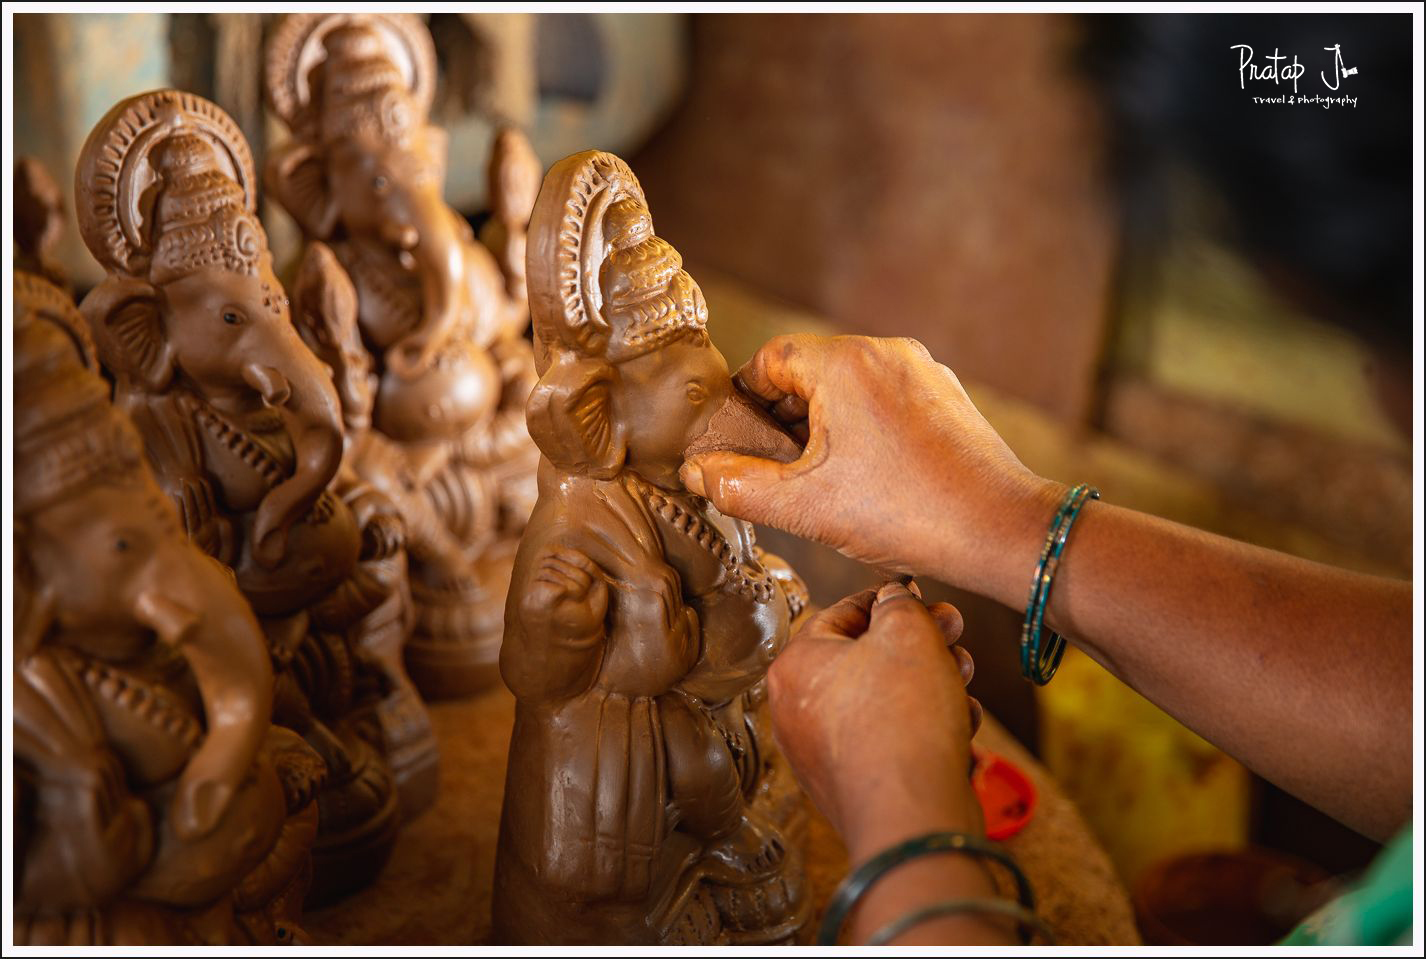 Attaching a trunk to a clay Ganesha